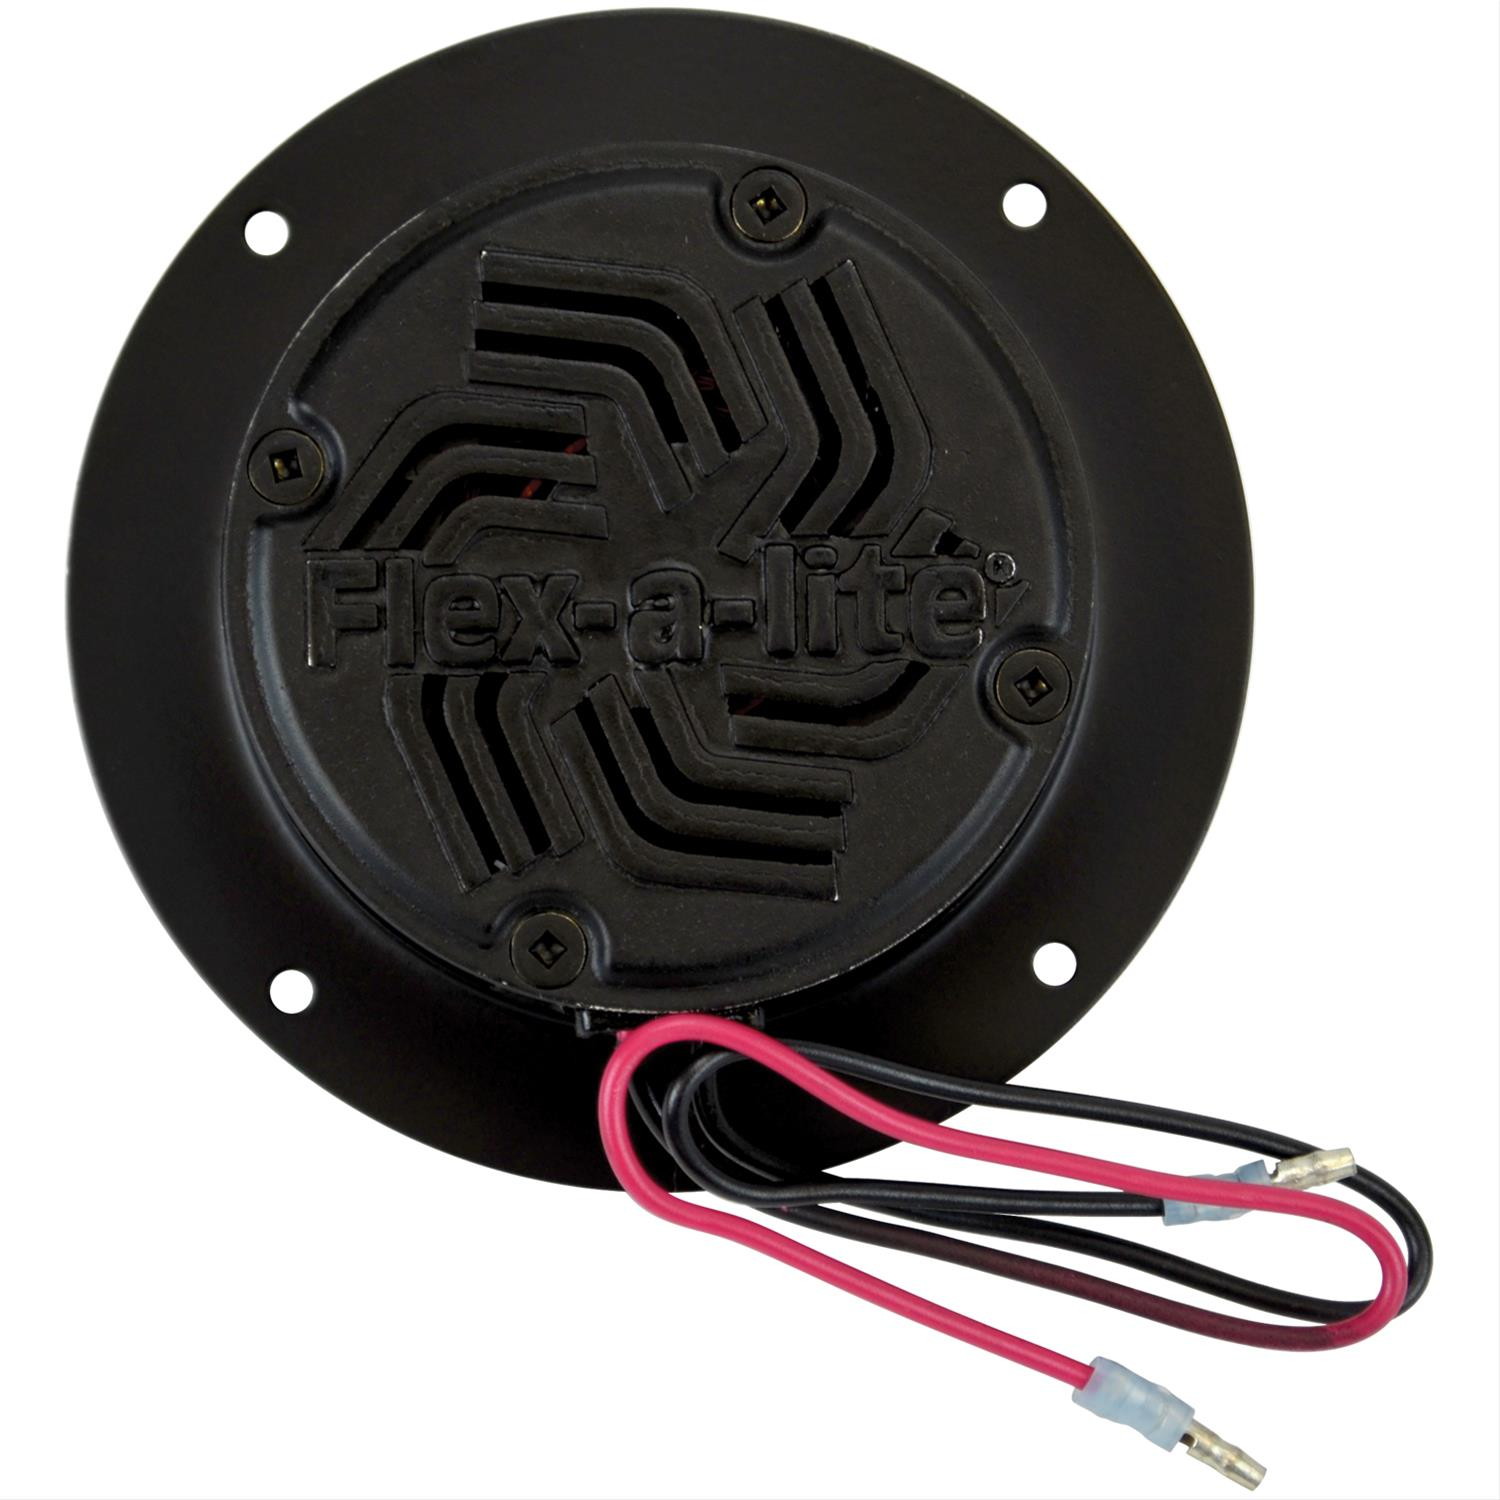 Flex A Lite Replacement Electric Fan Motors 30186 Free Shipping On Flexalite Wiring Diagram Orders Over 99 At Summit Racing